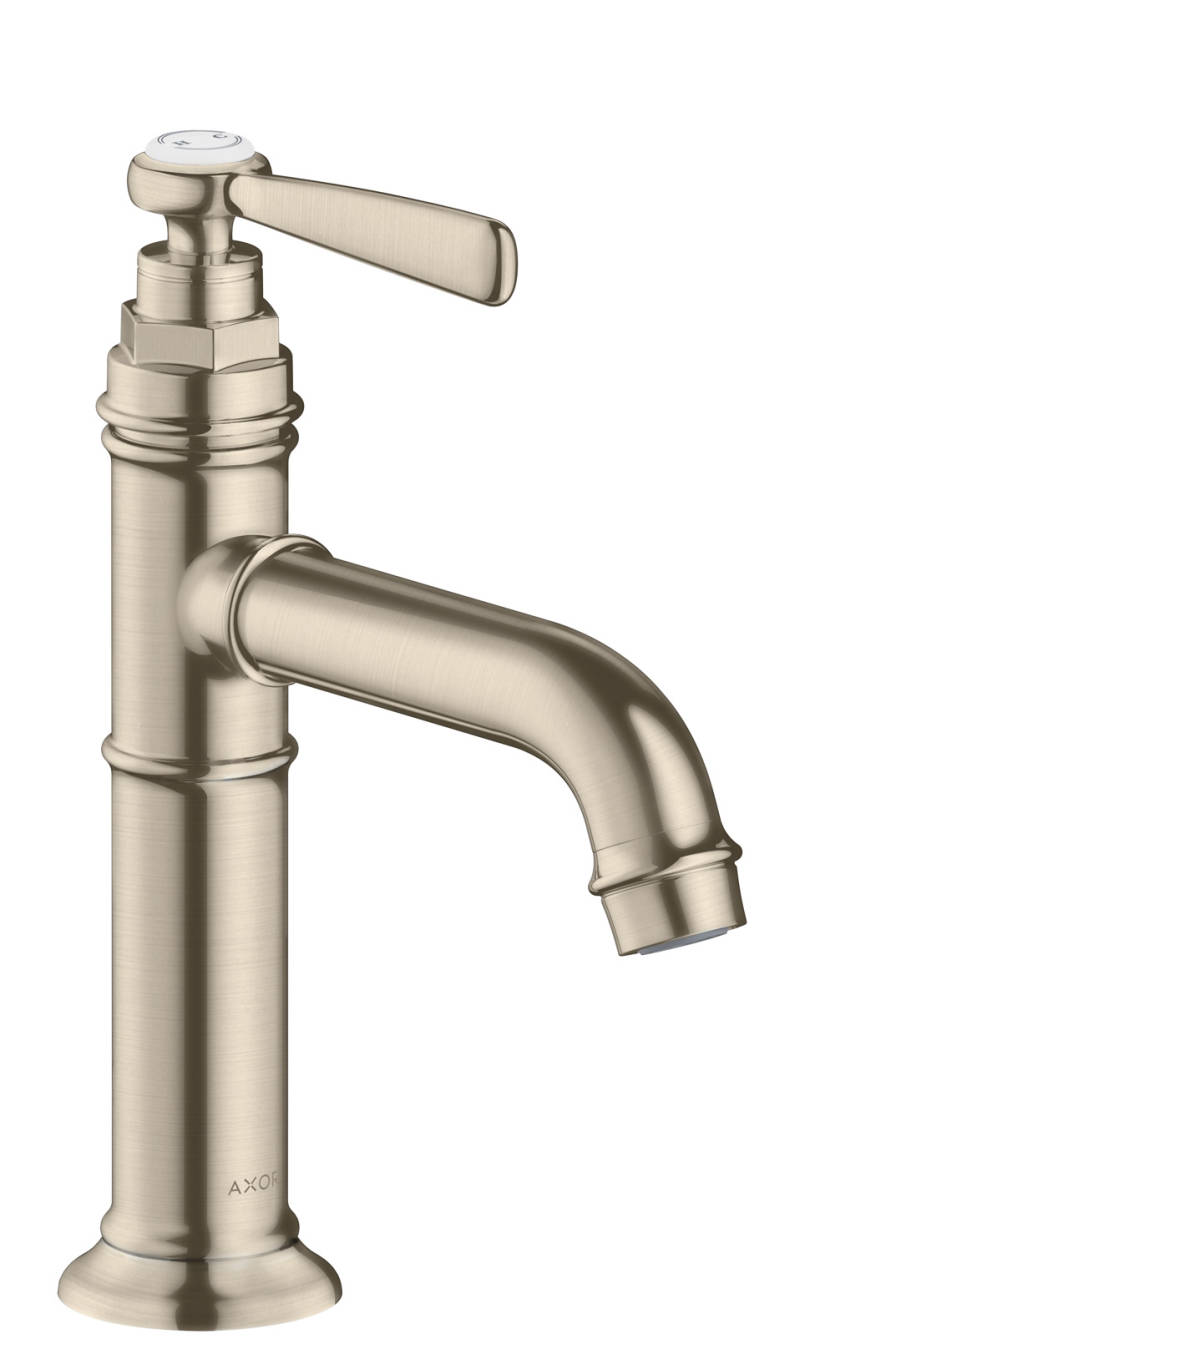 Single lever basin mixer 100 with lever handle and waste set, Brushed Nickel, 16516820